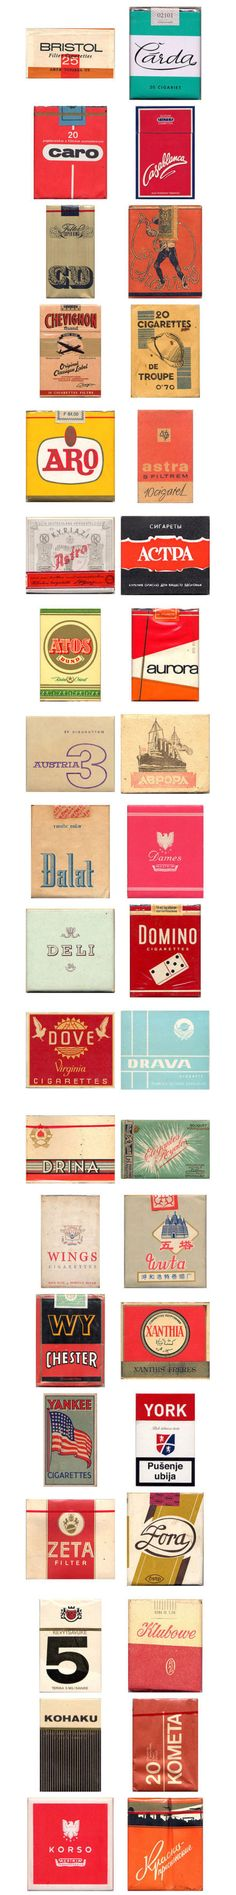 Cigarette Box Packaging - design from all over the world, (East Europe), Retro Packaging, Brand Packaging, Packaging Design, Box Packaging, Vintage Labels, Vintage Posters, Retro Design, Vintage Designs, Online Logo